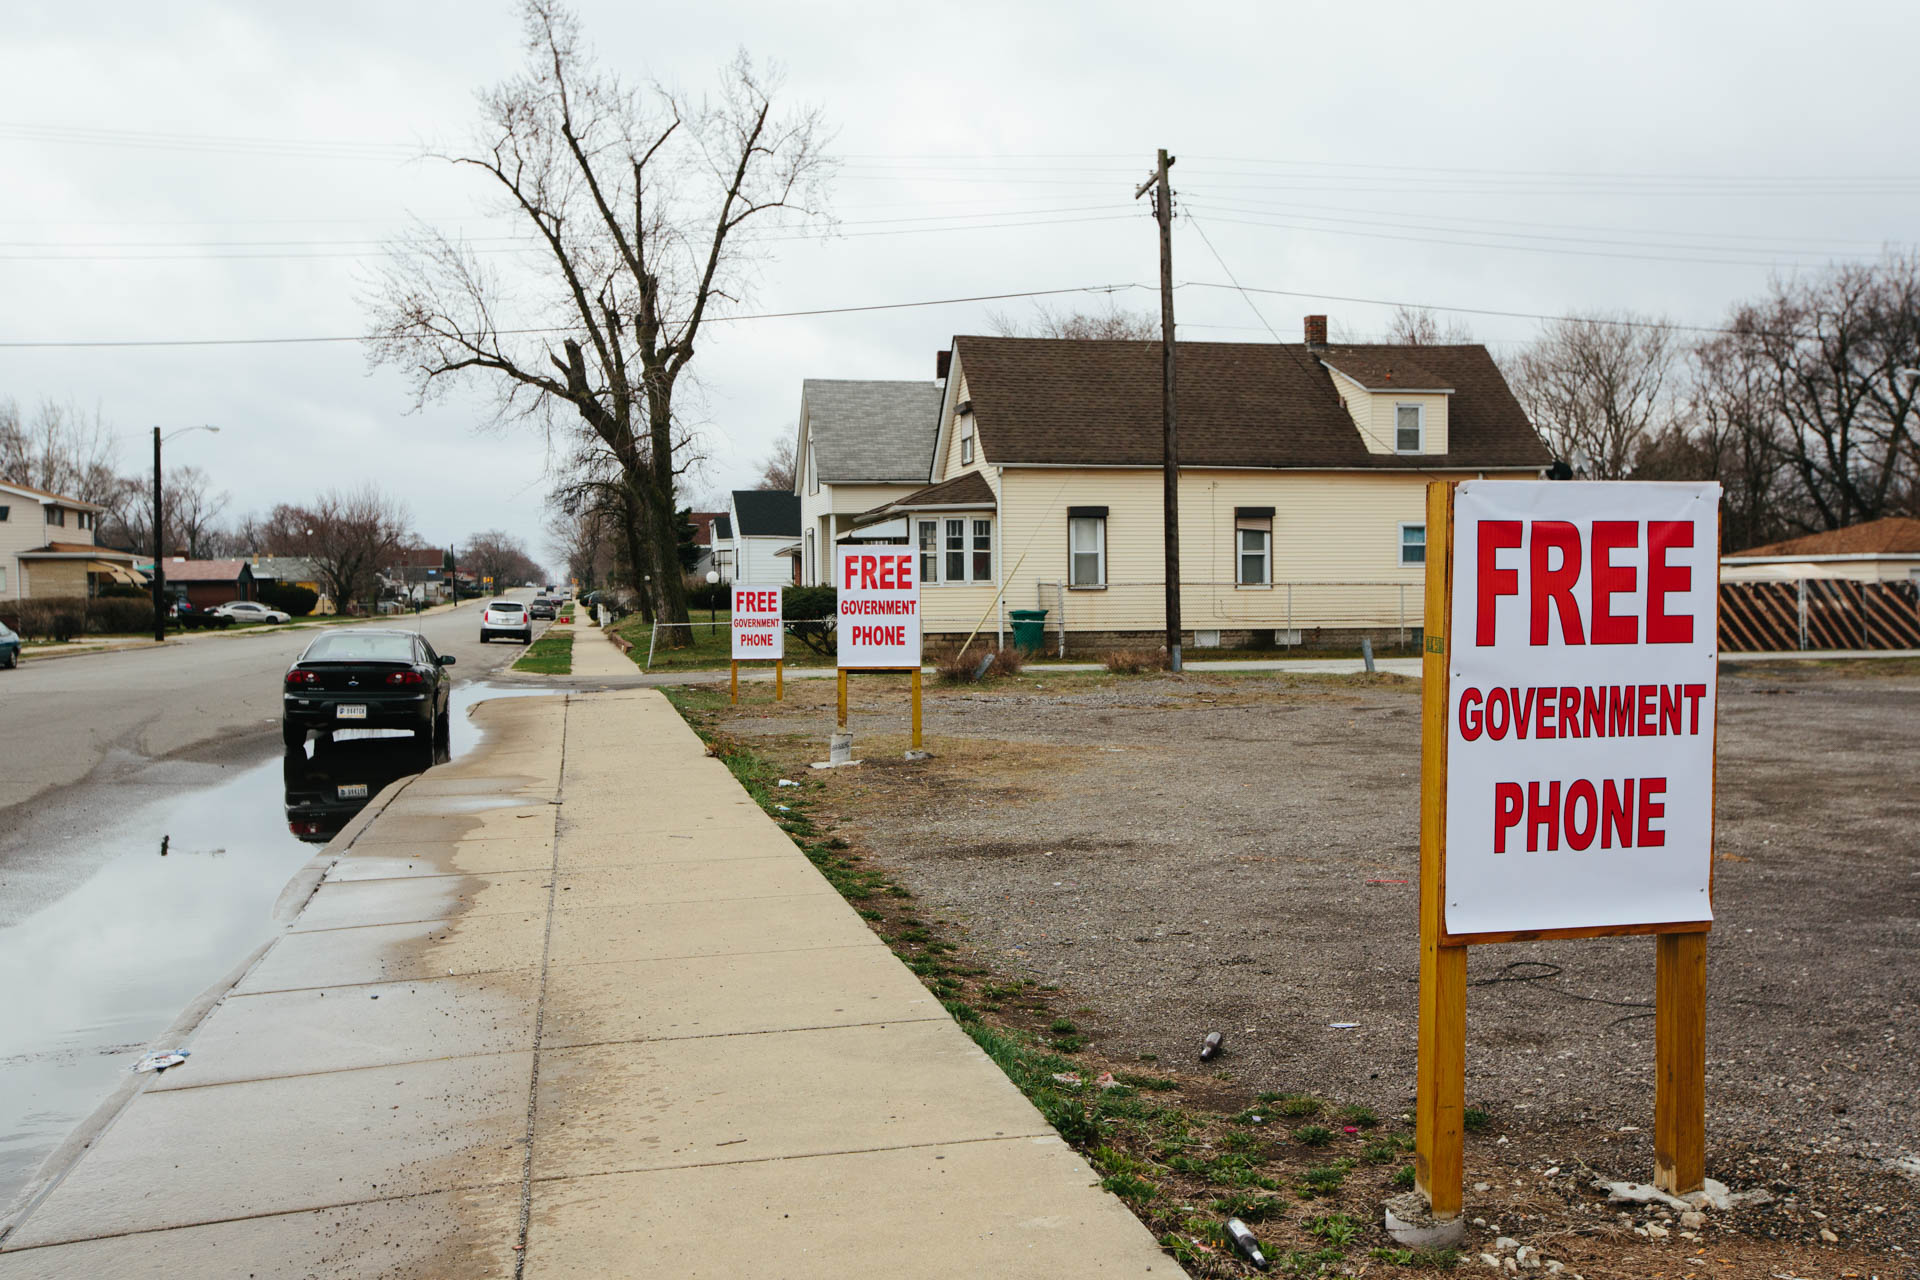 free-government-phone-gary-indiana